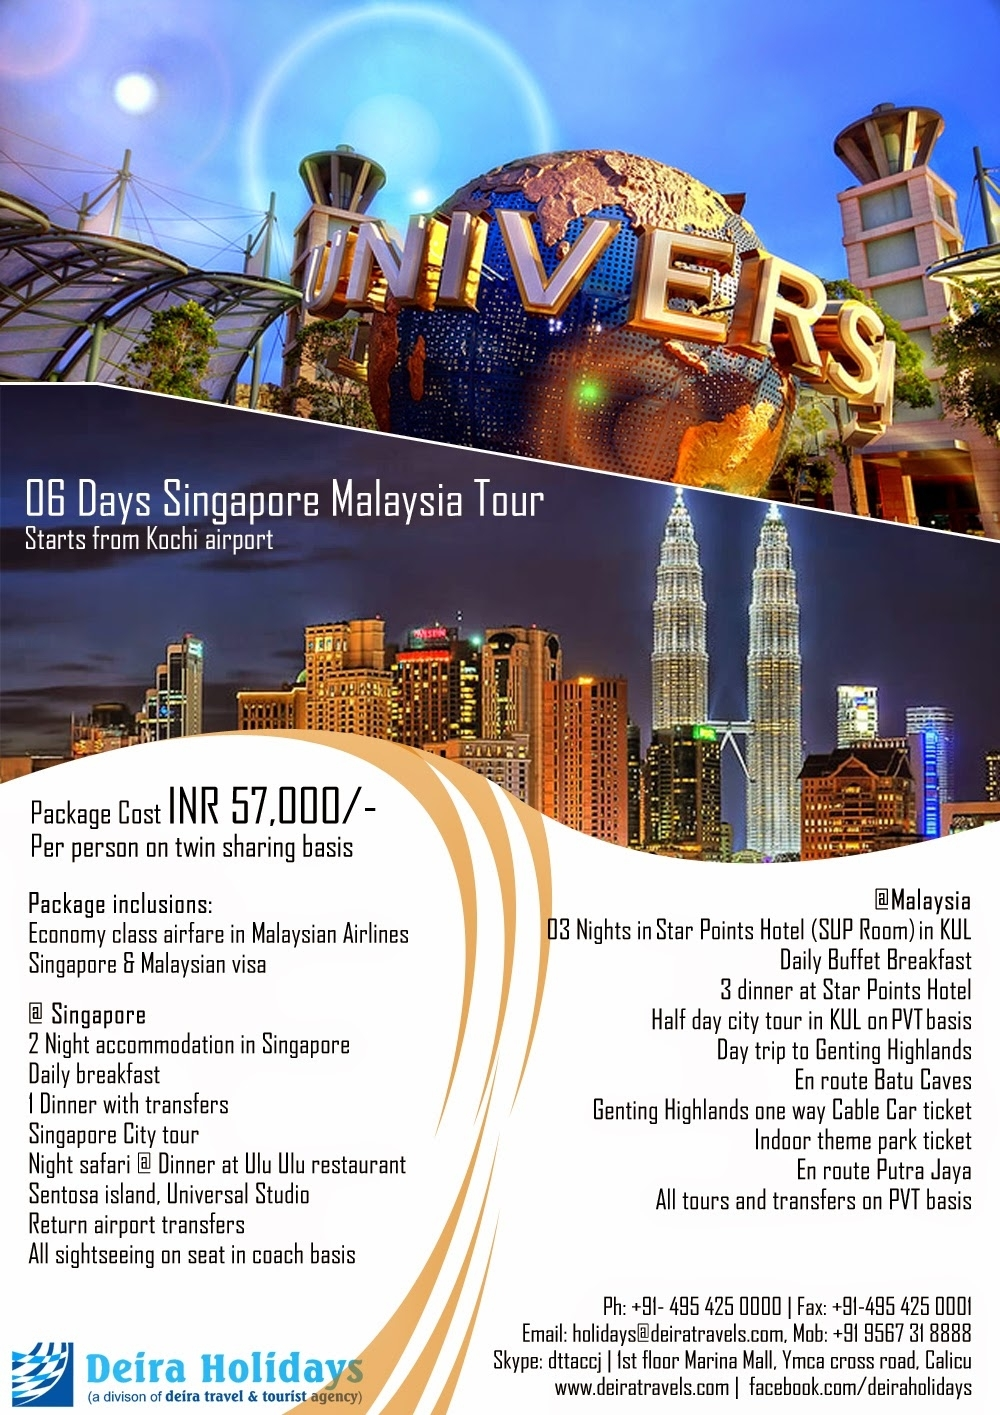 06 Days Singapore Malaysia Tour in Travel Package Singapore To Genting